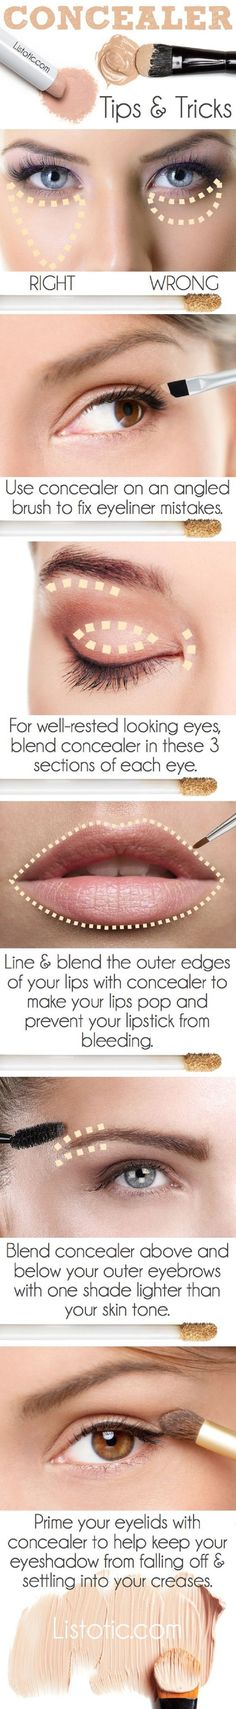 Concealer tips and tricks